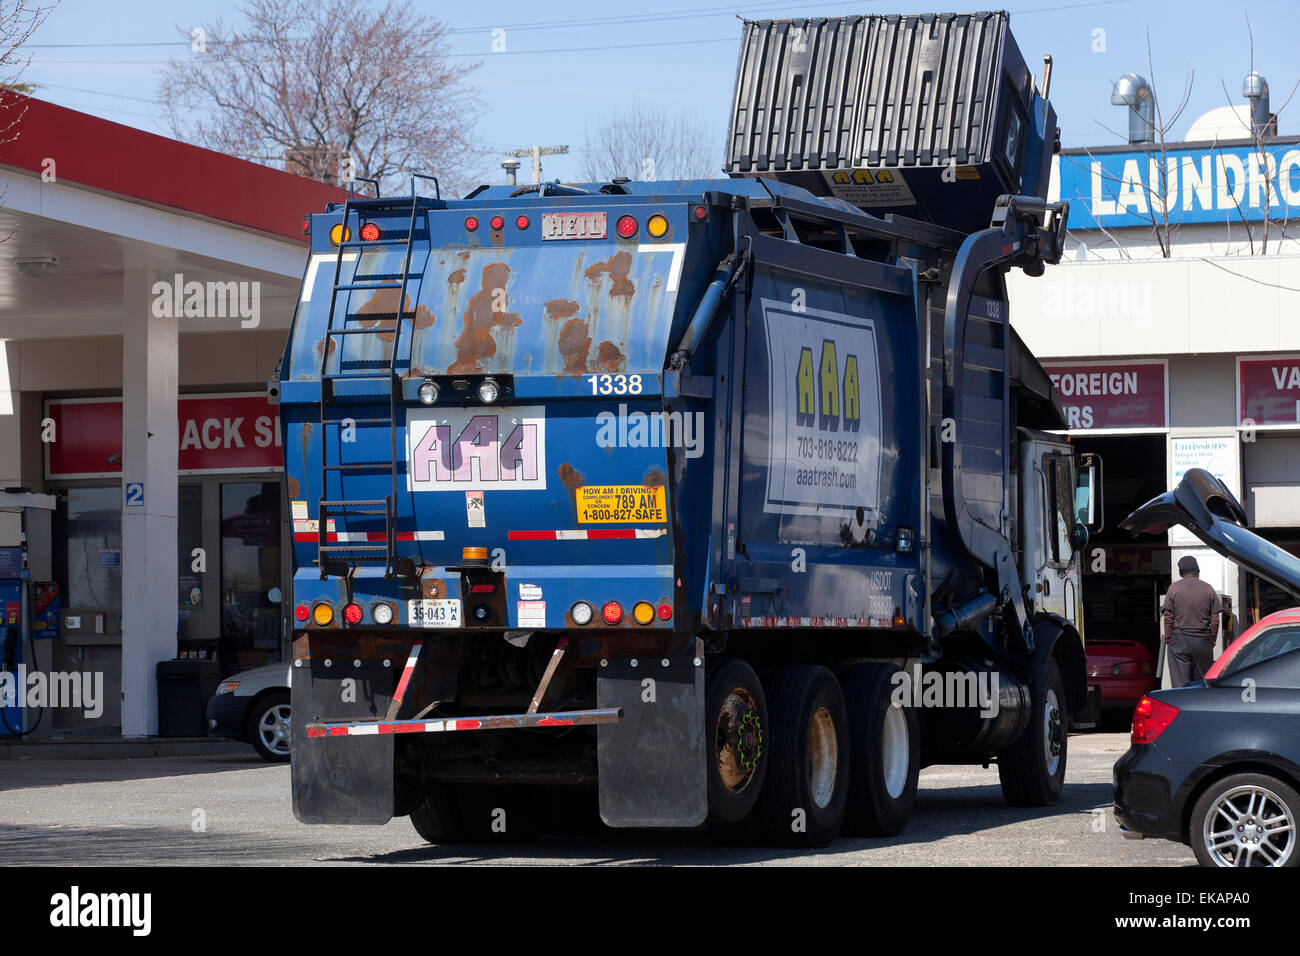 Refuse collection truck - USA - Stock Image